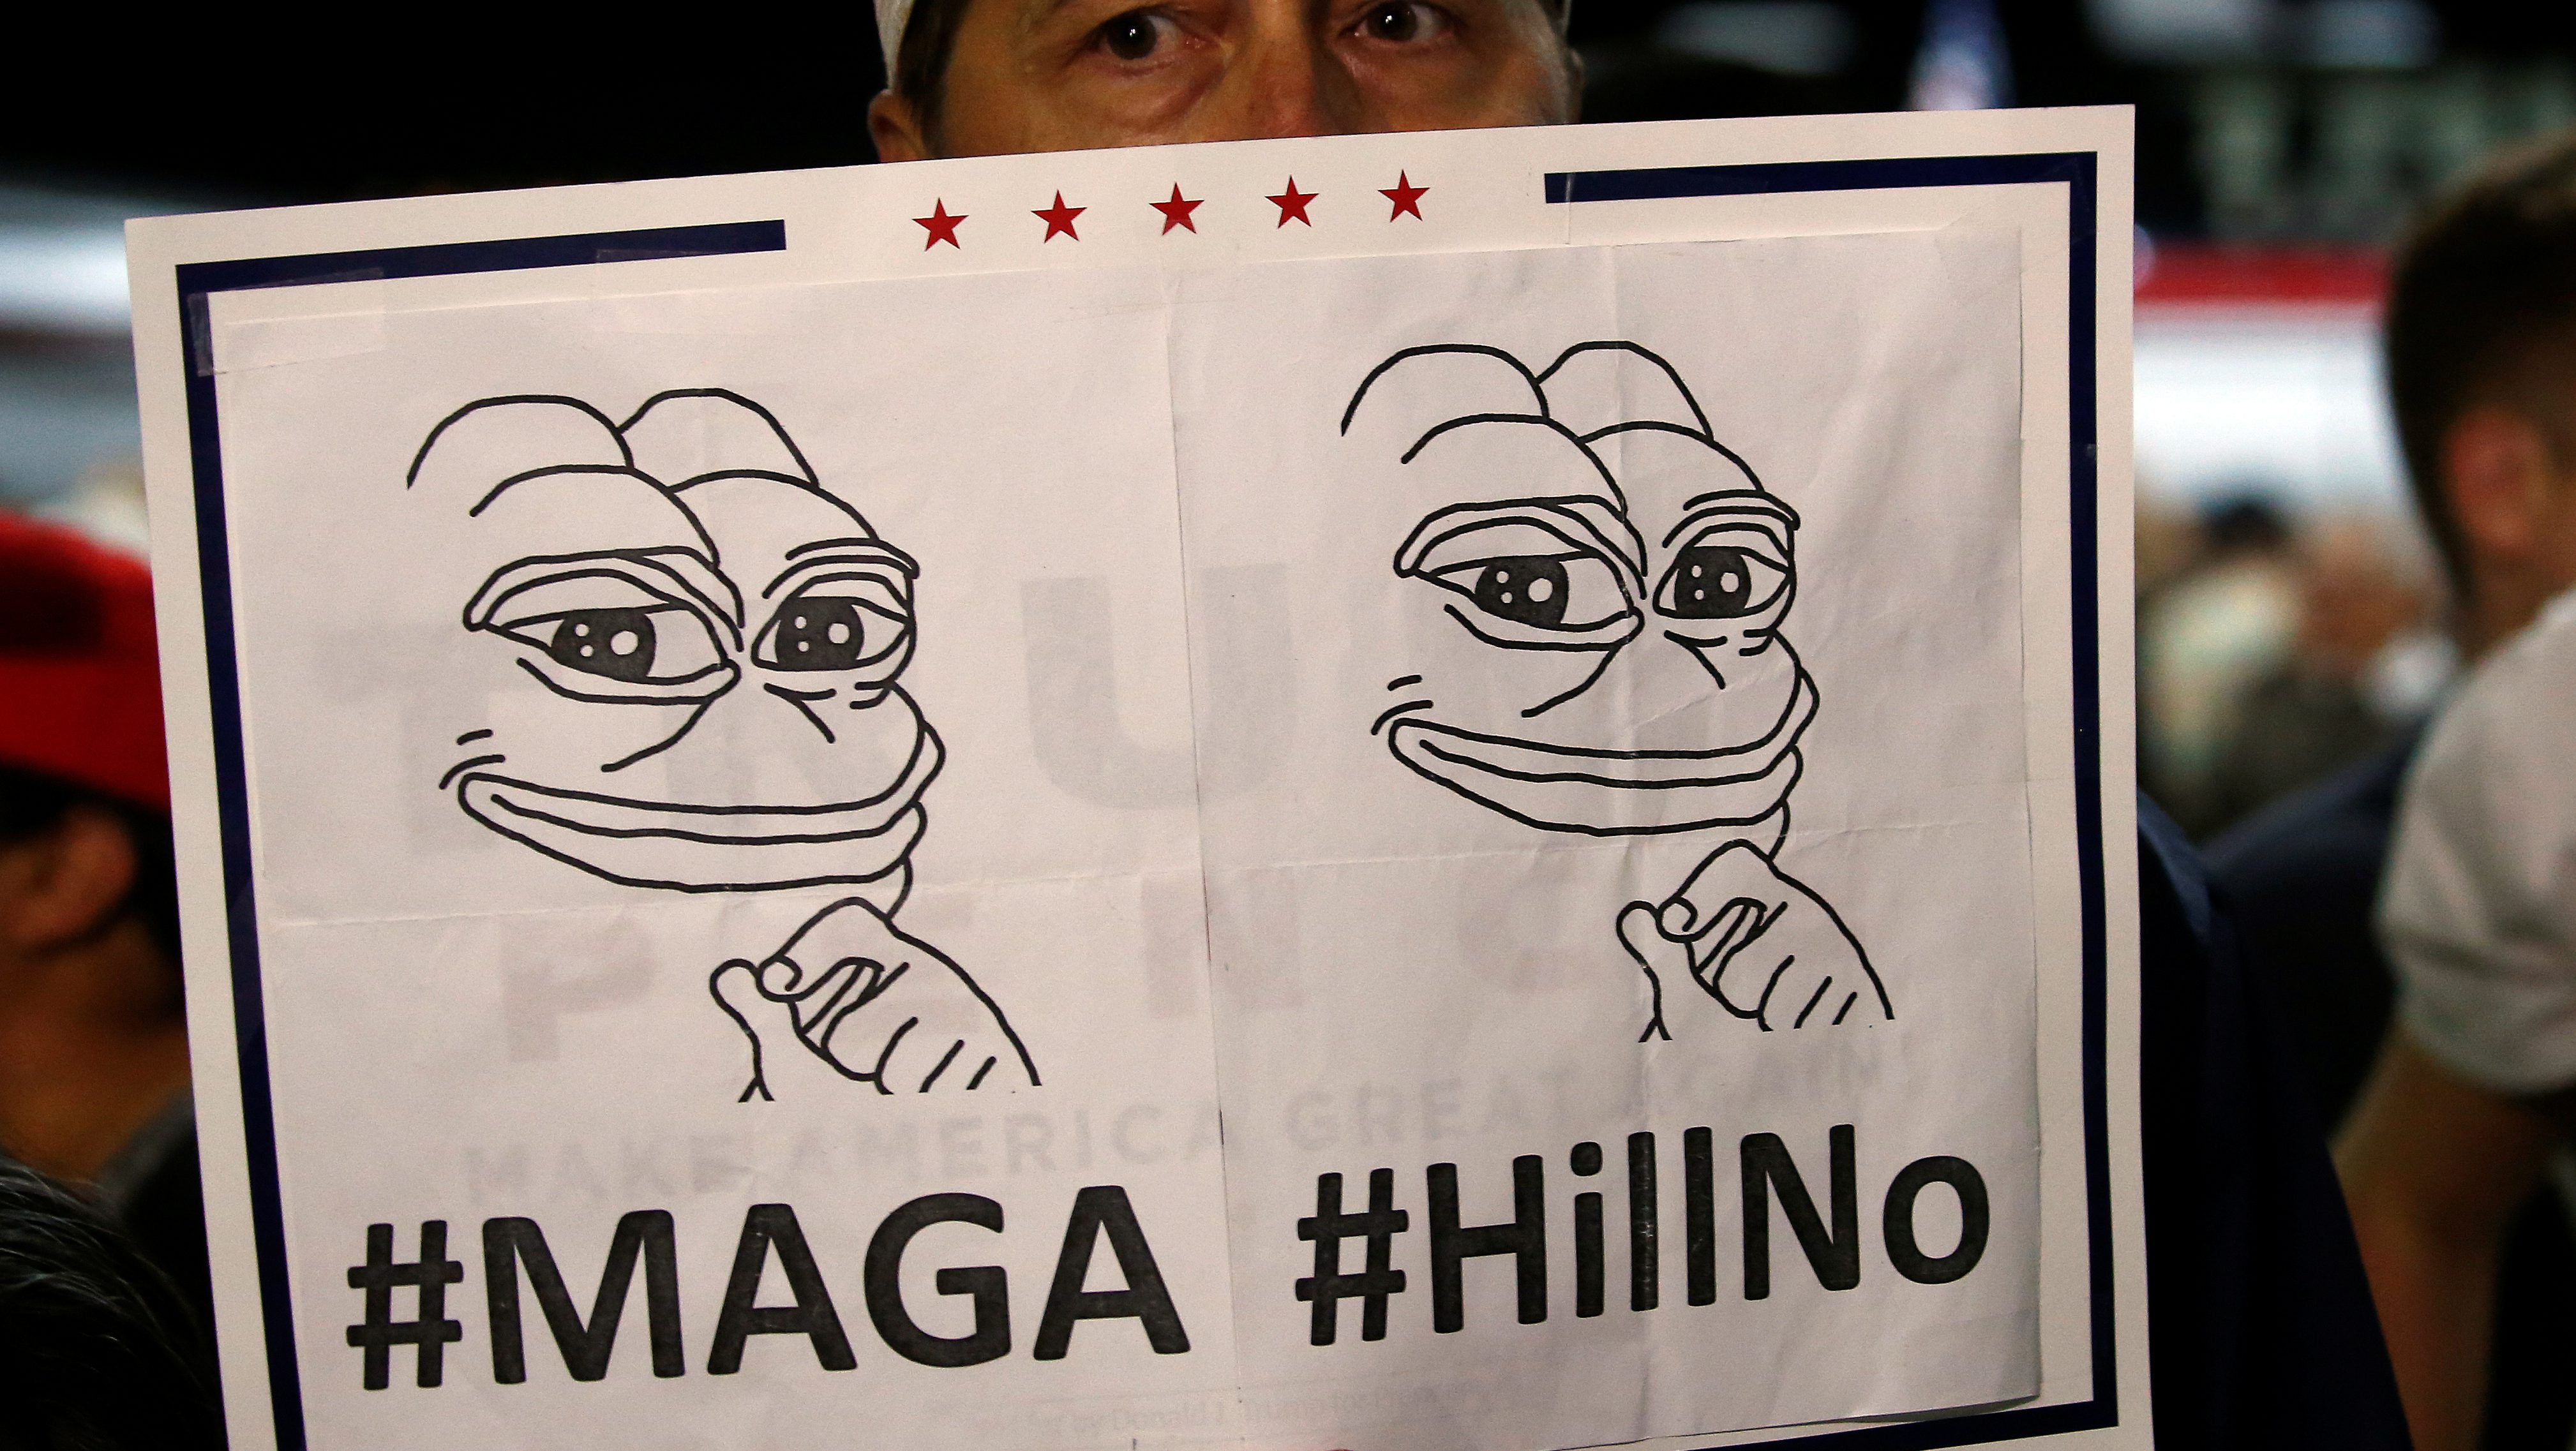 A man hides his face behind a Pepe the Frog sign after Republican presidential nominee Donald Trump spoke at an airport campaign rally in Albuquerque, New Mexico, U.S. October 30, 2016.